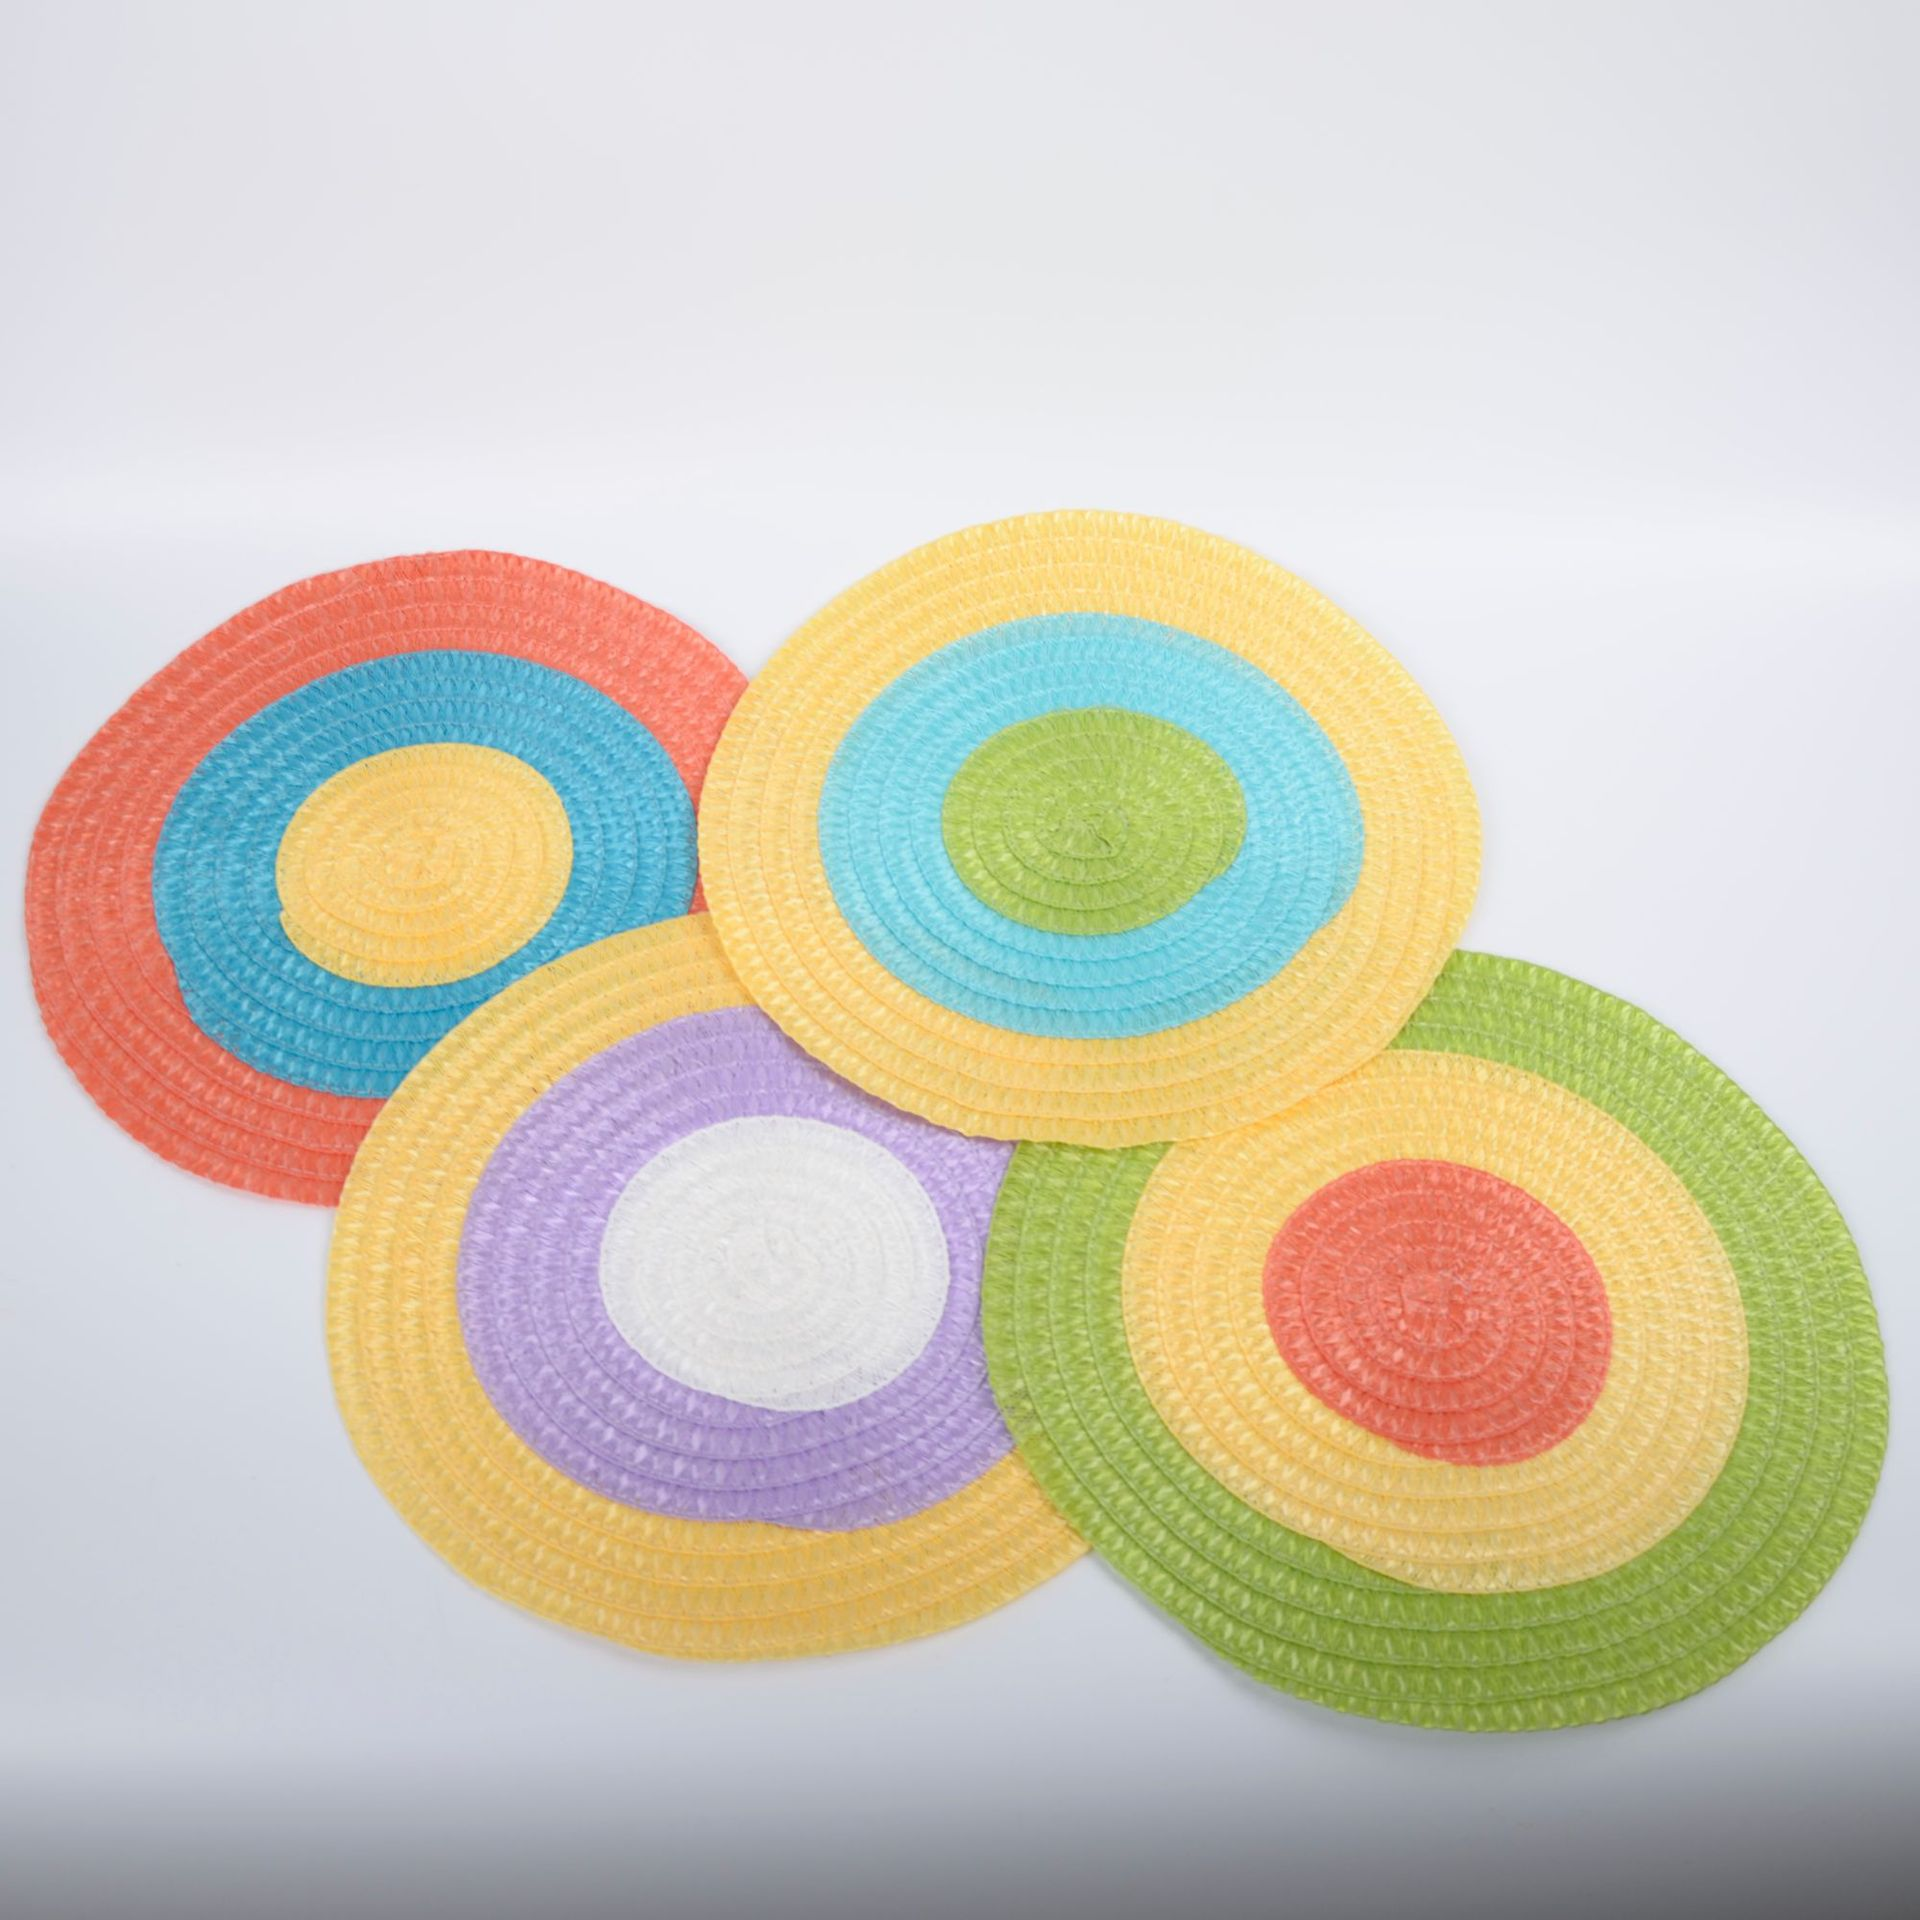 Multicolor Thermal Insulation Round Woven Placemat for Vibrant Interiors